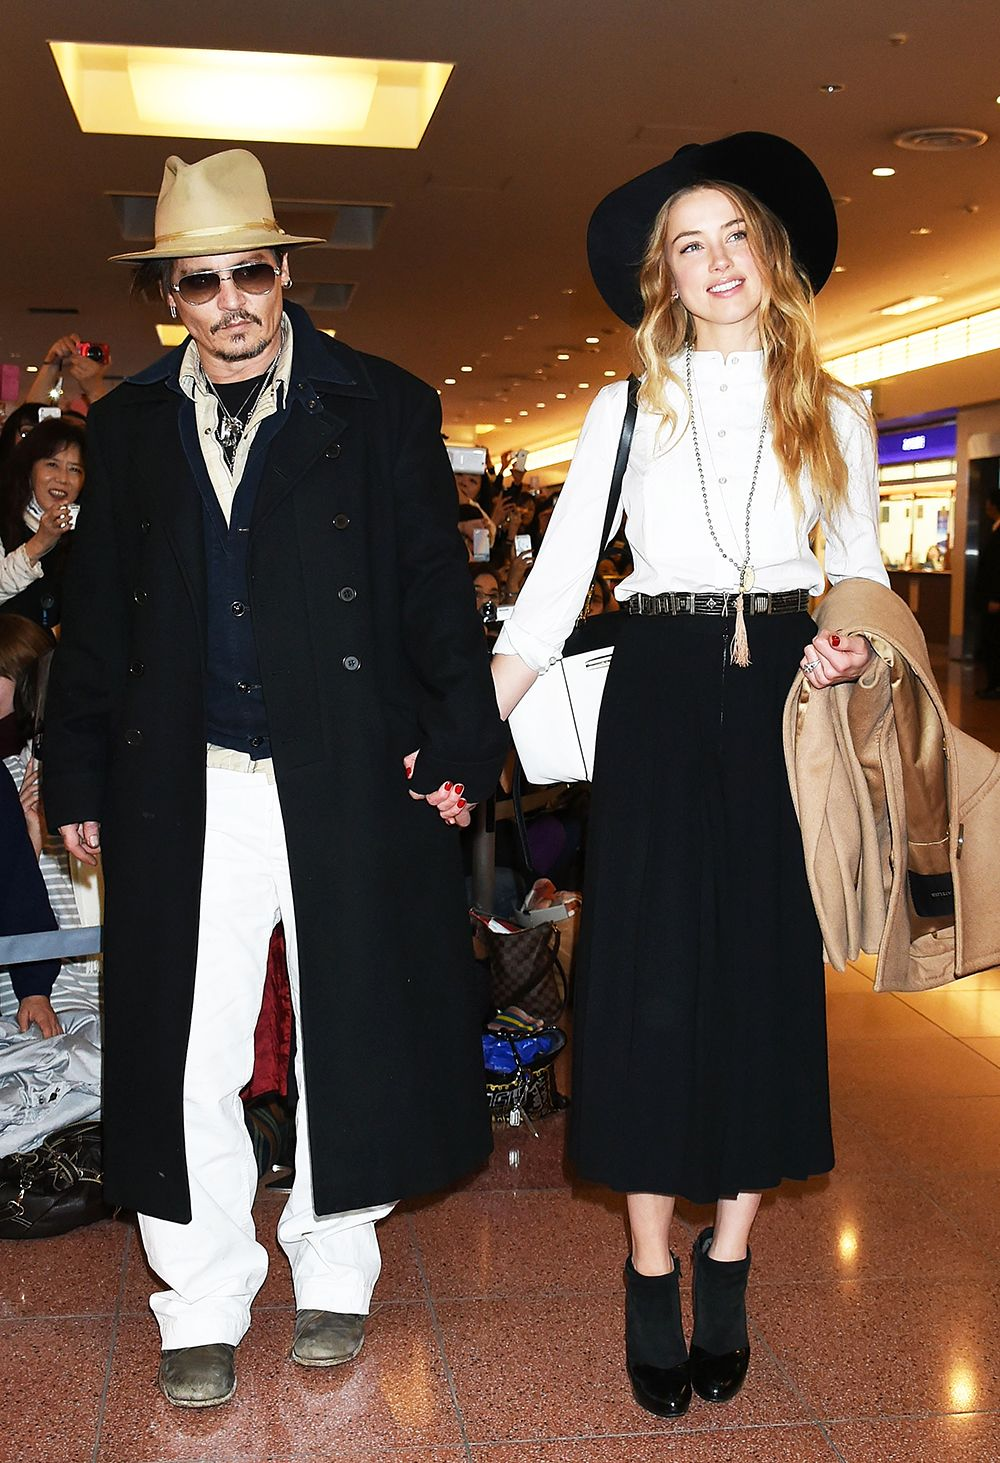 Johnny Depp And Amber Heard Got Married Amber Heard Style Johnny Depp And Amber Celebrity Street Style